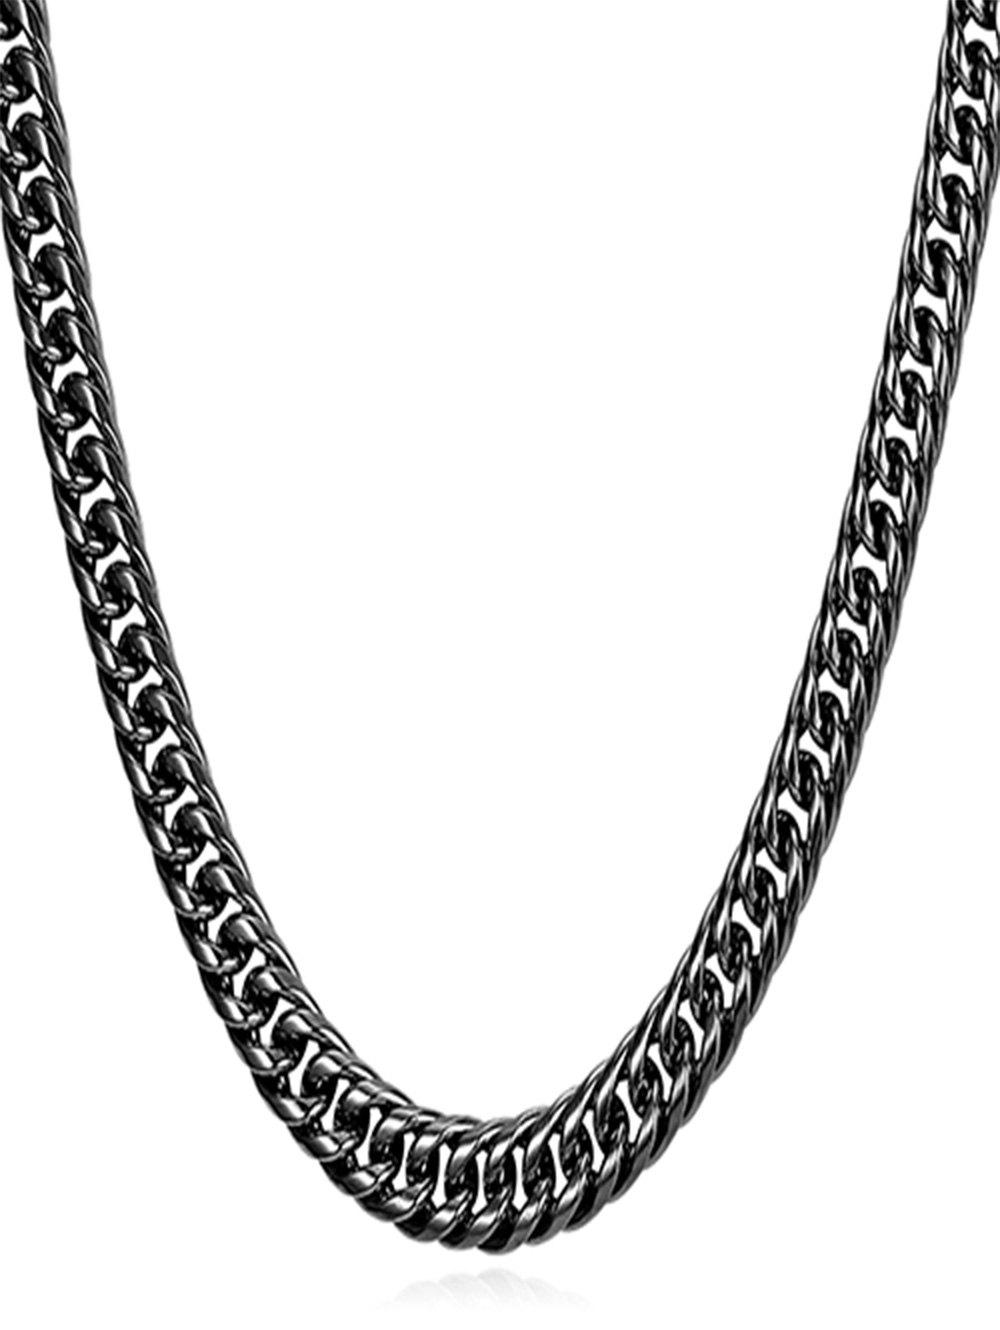 Store Stainless Steel Simple Design Chain Necklace